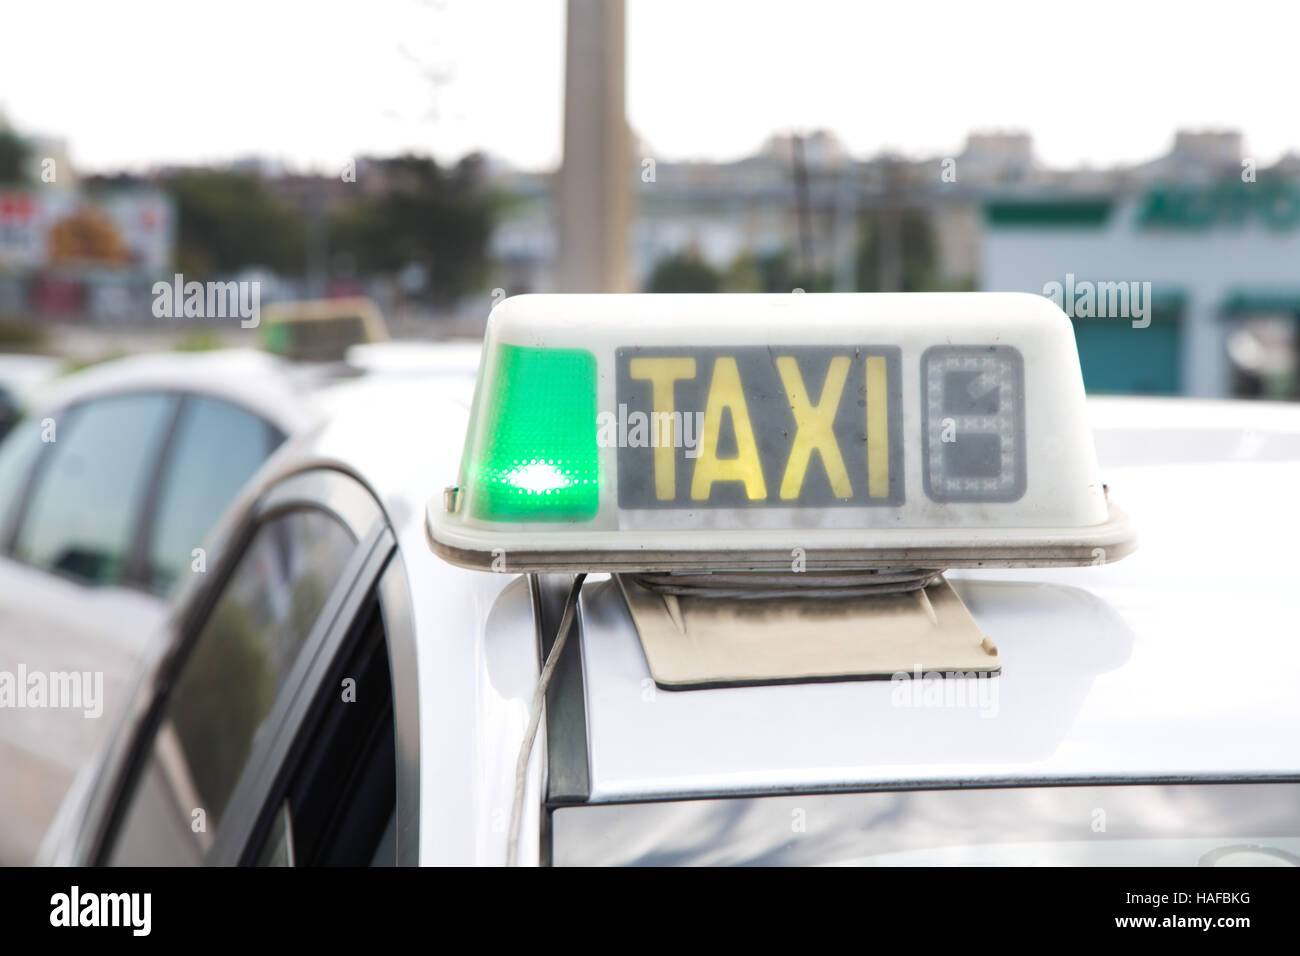 Taxi cab with green light on to show availability Stock